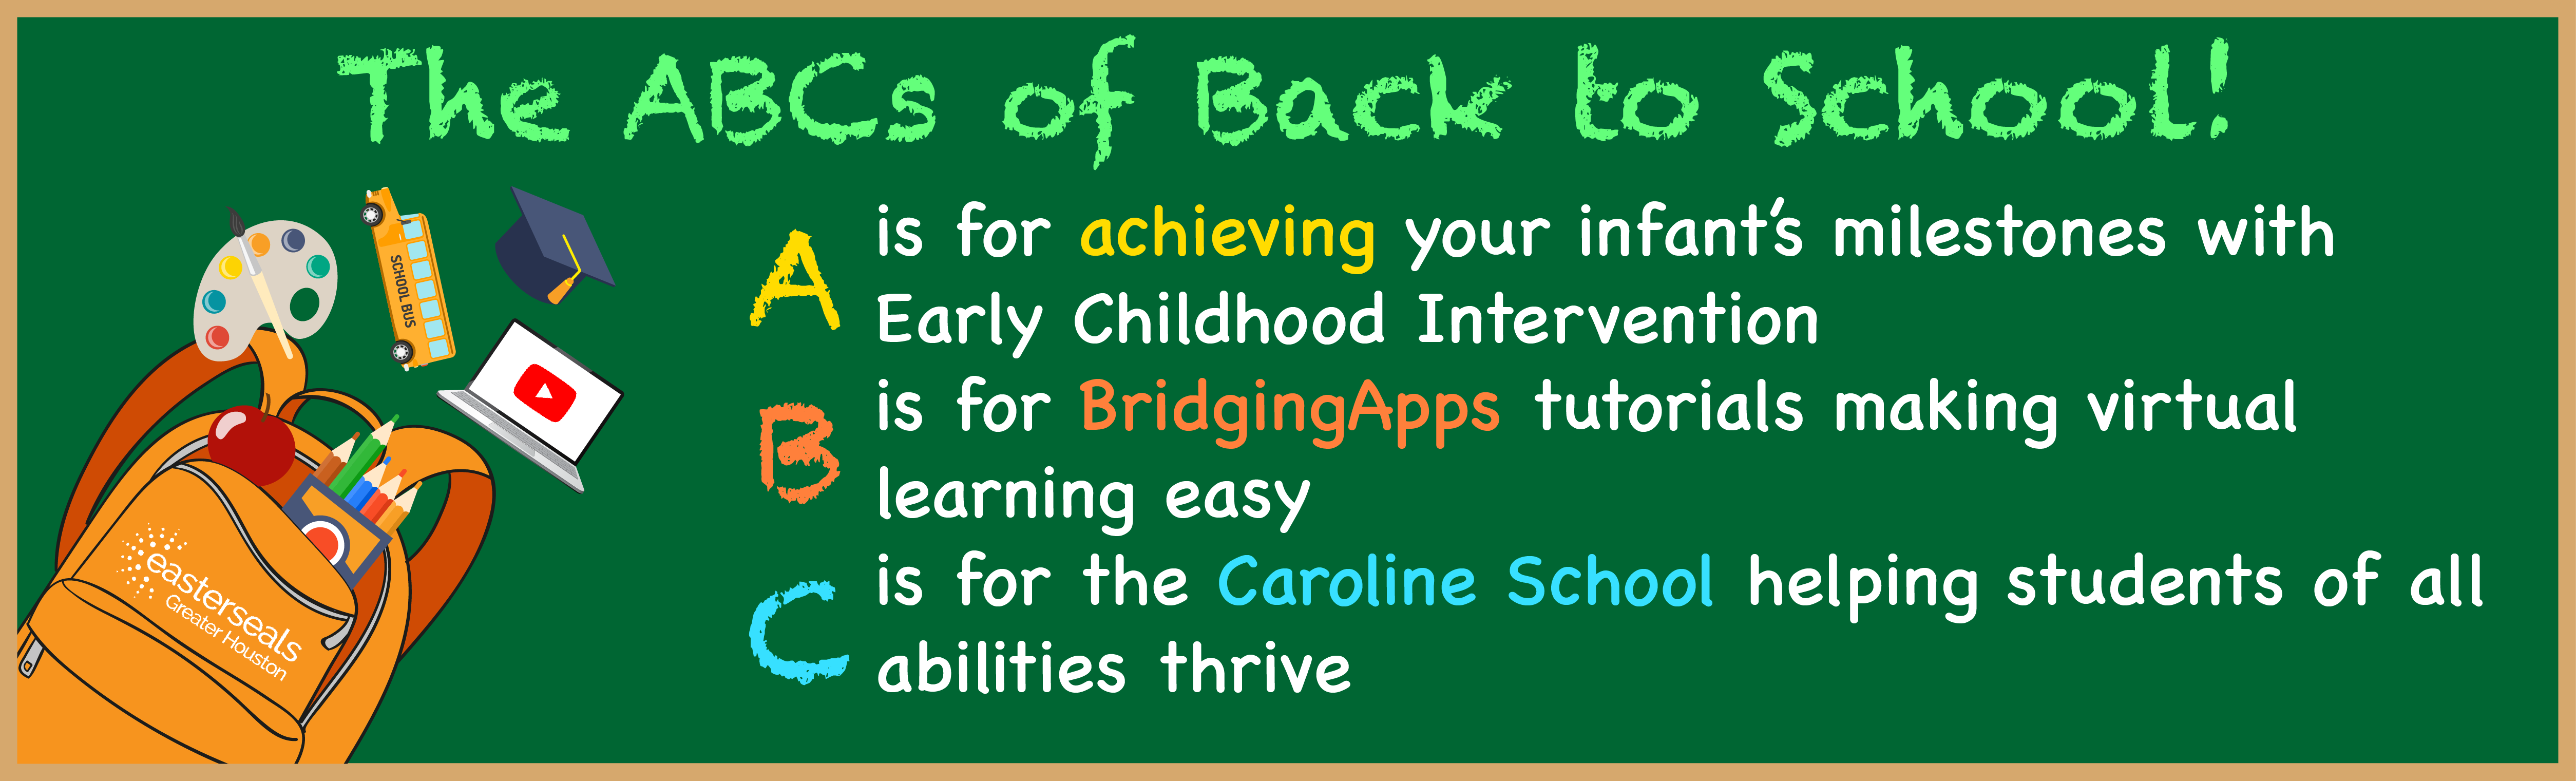 Learn more about the Early Childhood Program, BridgingApps and the Caroline School here